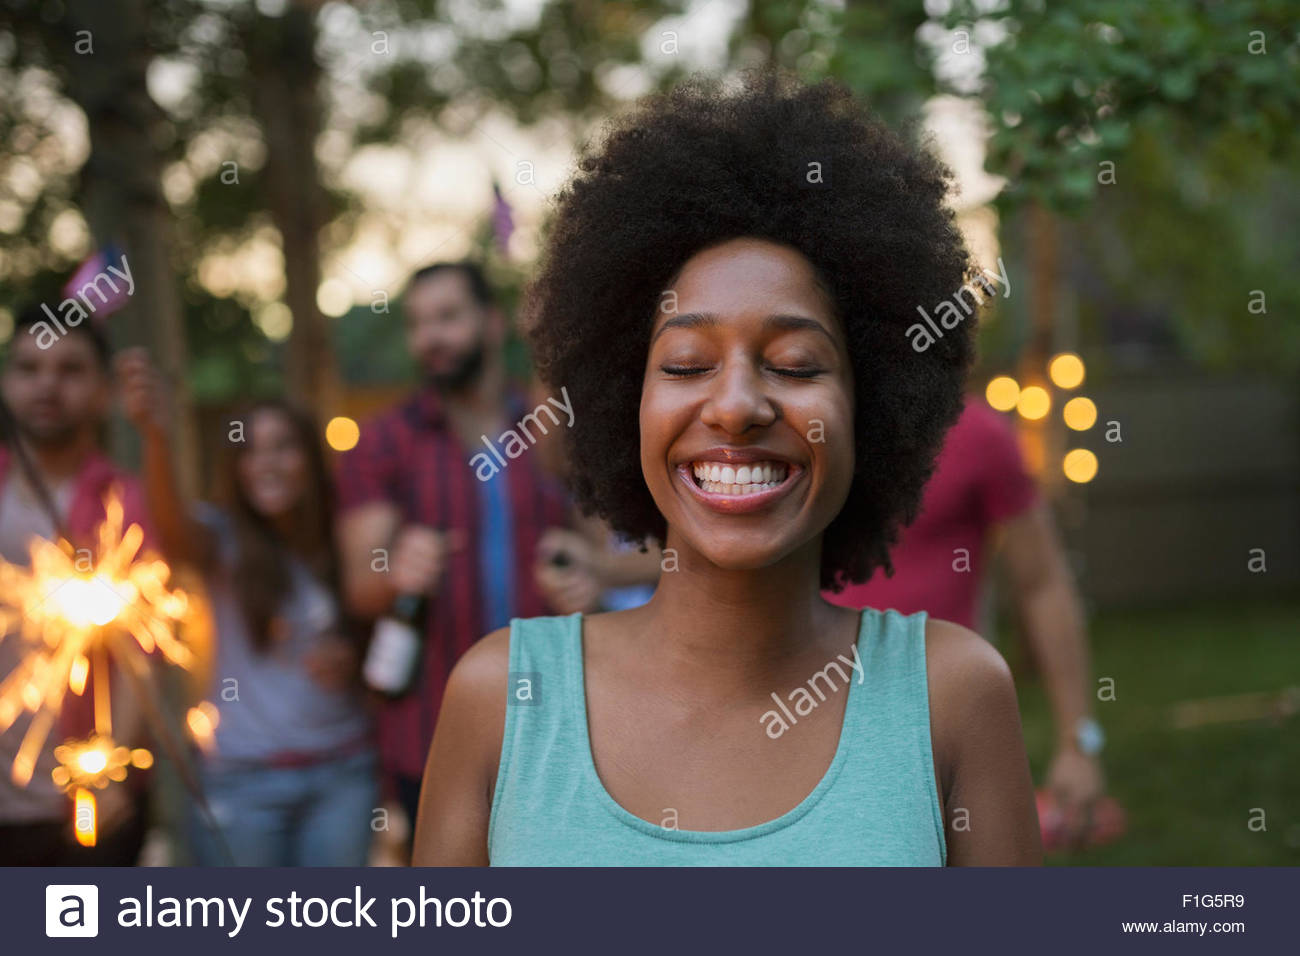 Enthusiastic woman with eyes closed holding sparkler backyard - Stock Image